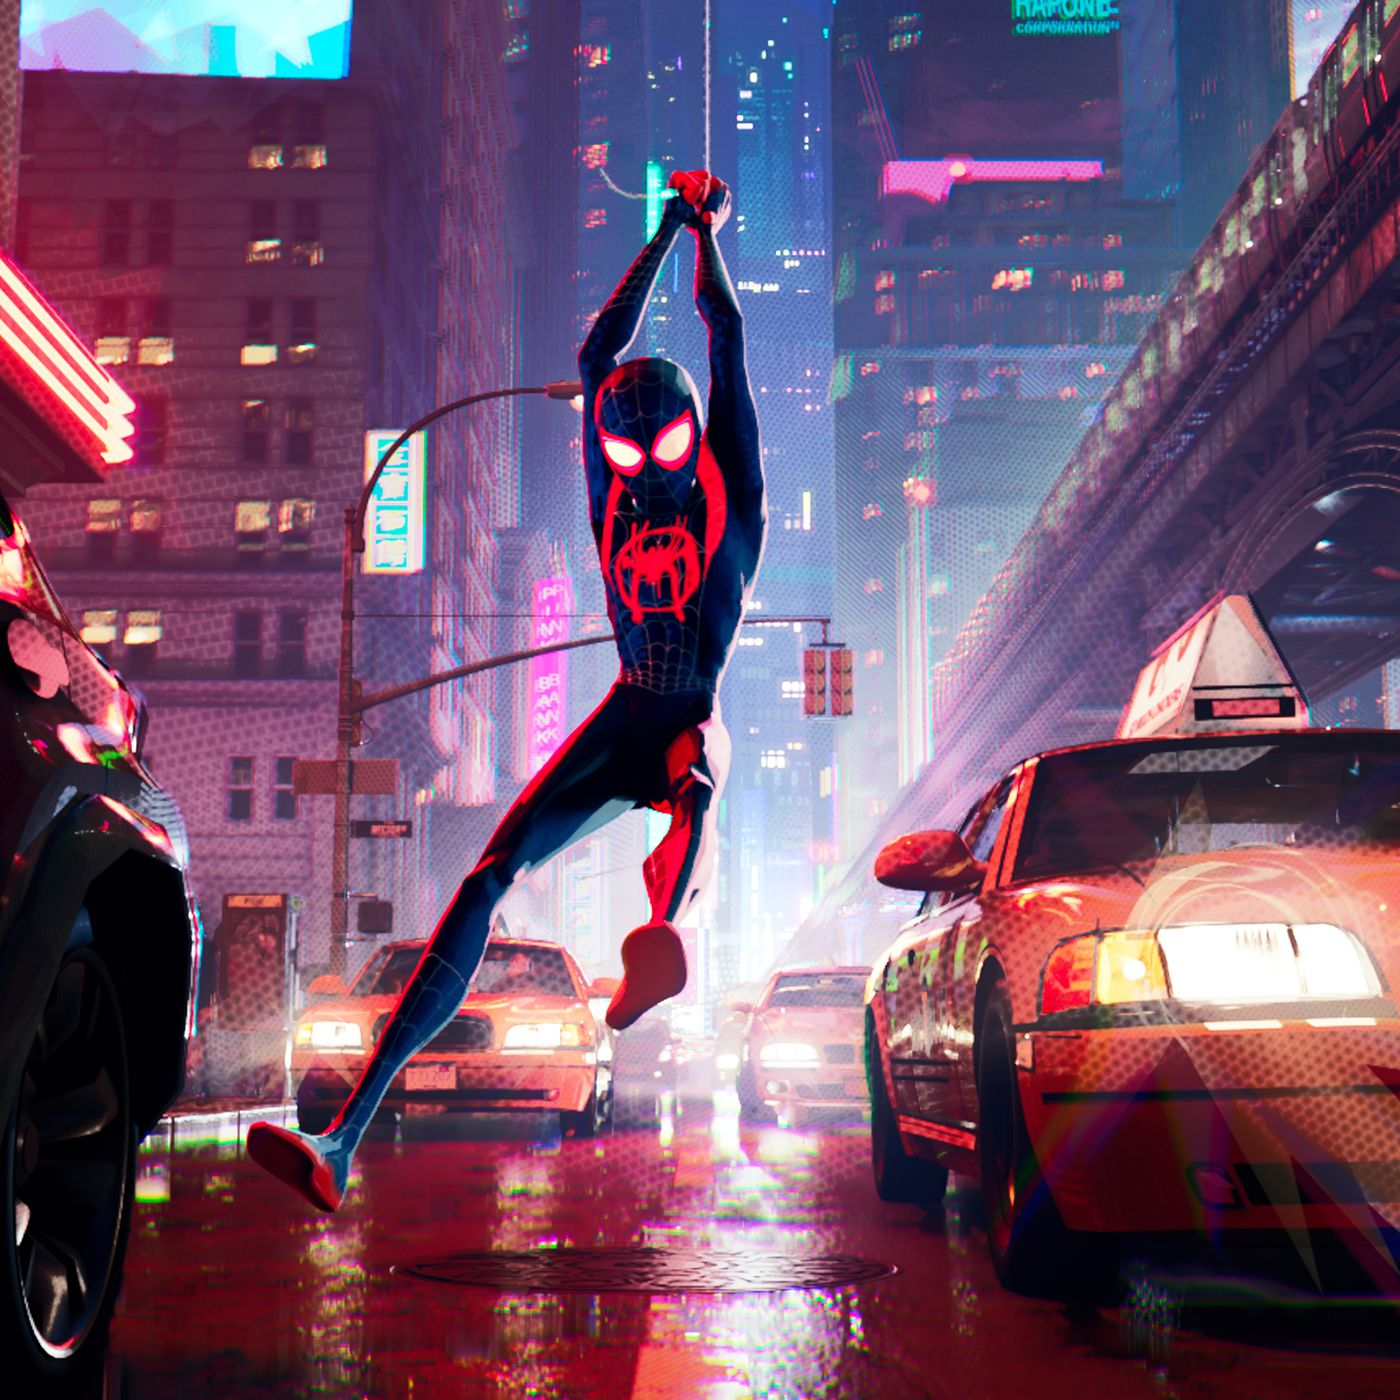 Spider-Man: Into the Spider-Verse is dazzling, hilarious, and unique - The Verge